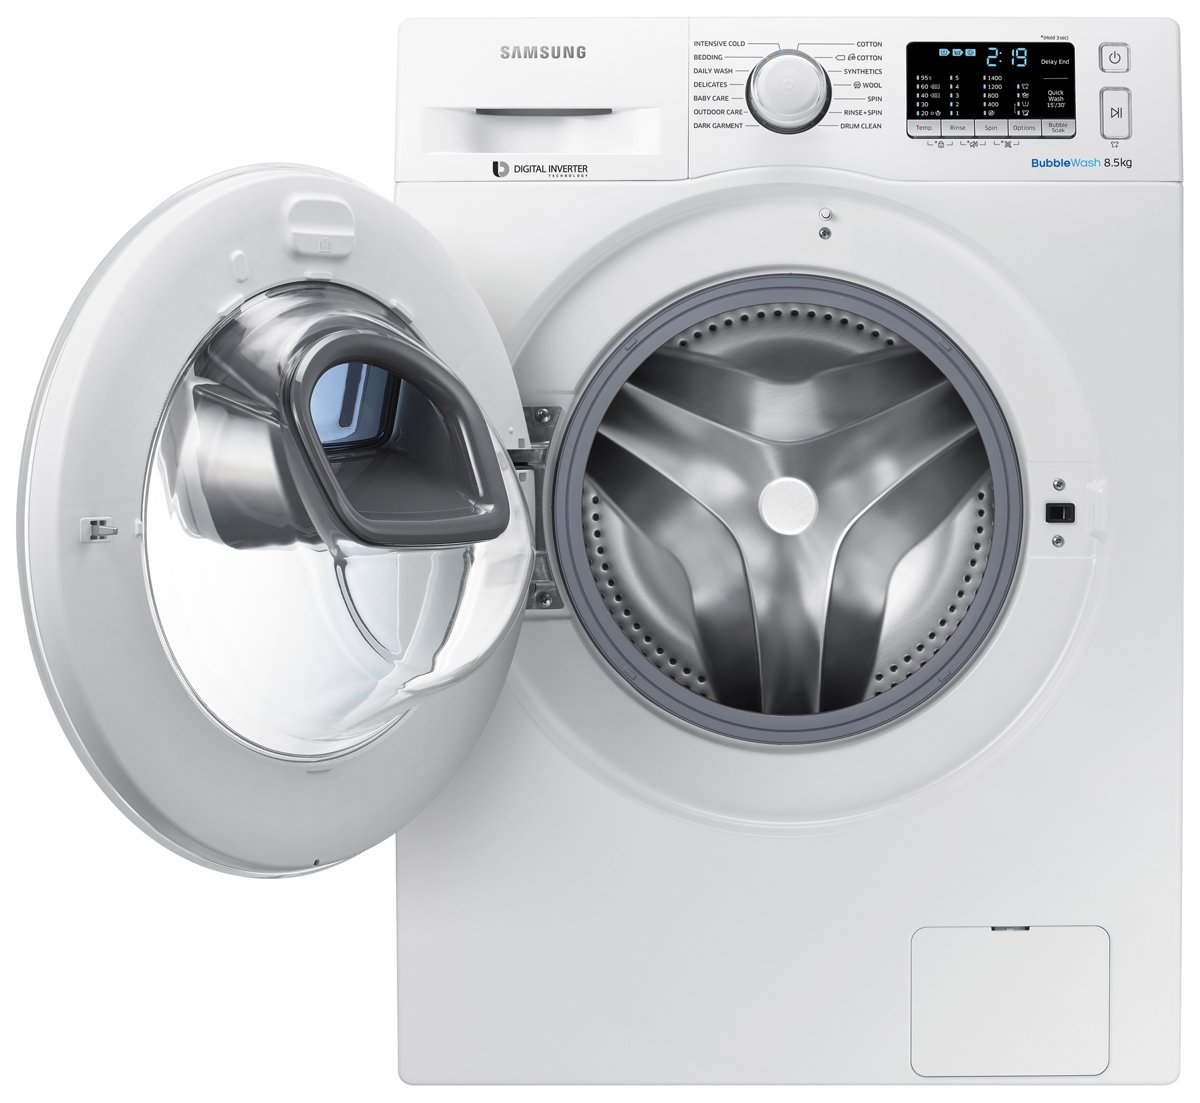 Samsung Front Load Washer Samsung Ww85k5410ww Addwash 8 5kg Front Load Washing Machine